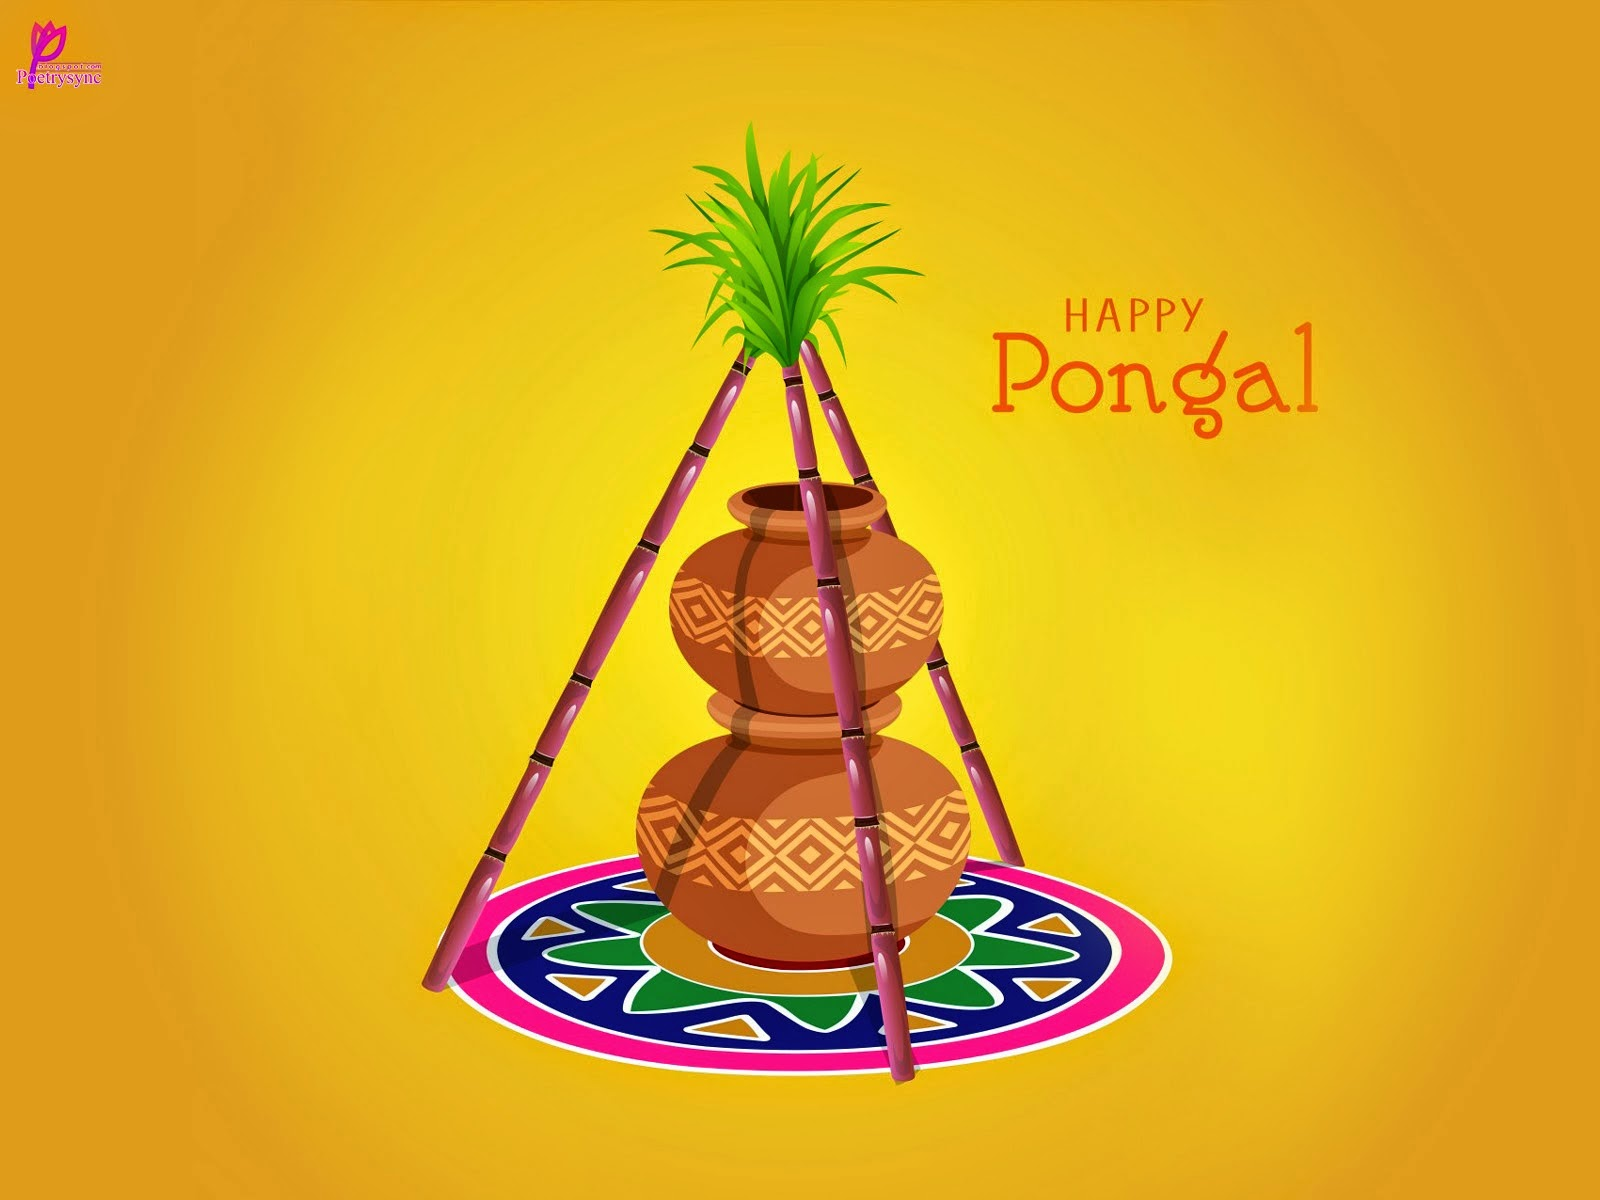 happy pongal wishes in tamil